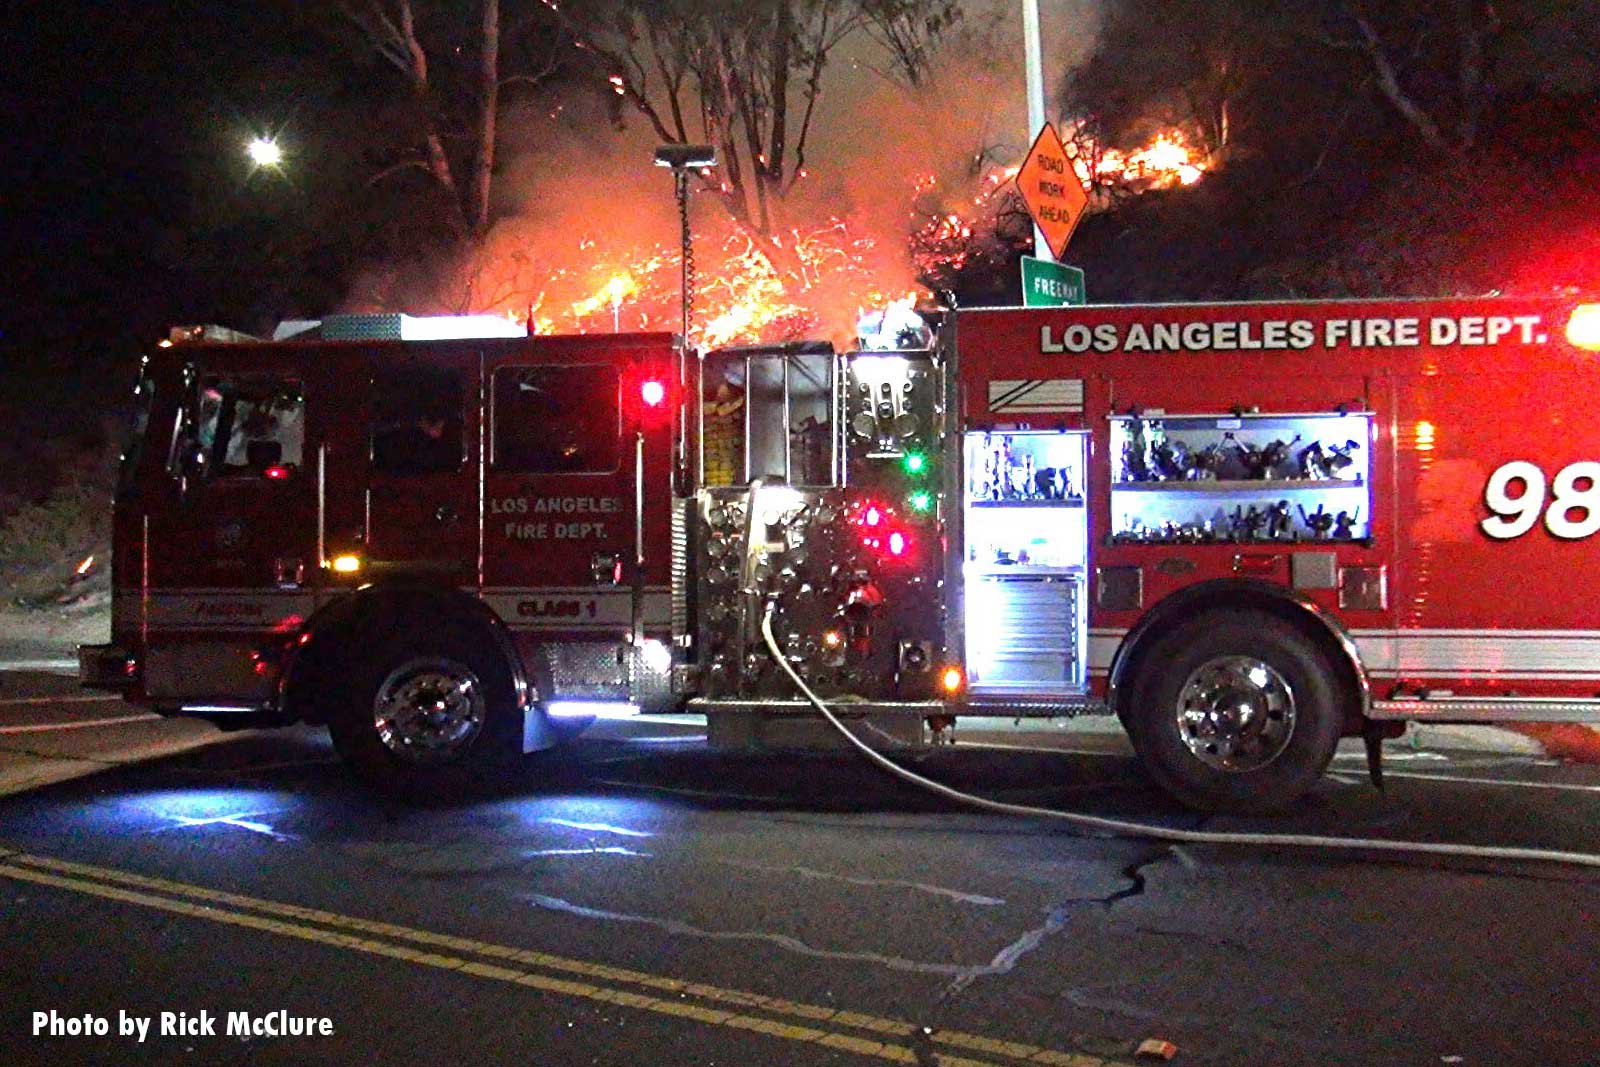 City of Los Angeles Fire Department rig pumping at brush fire